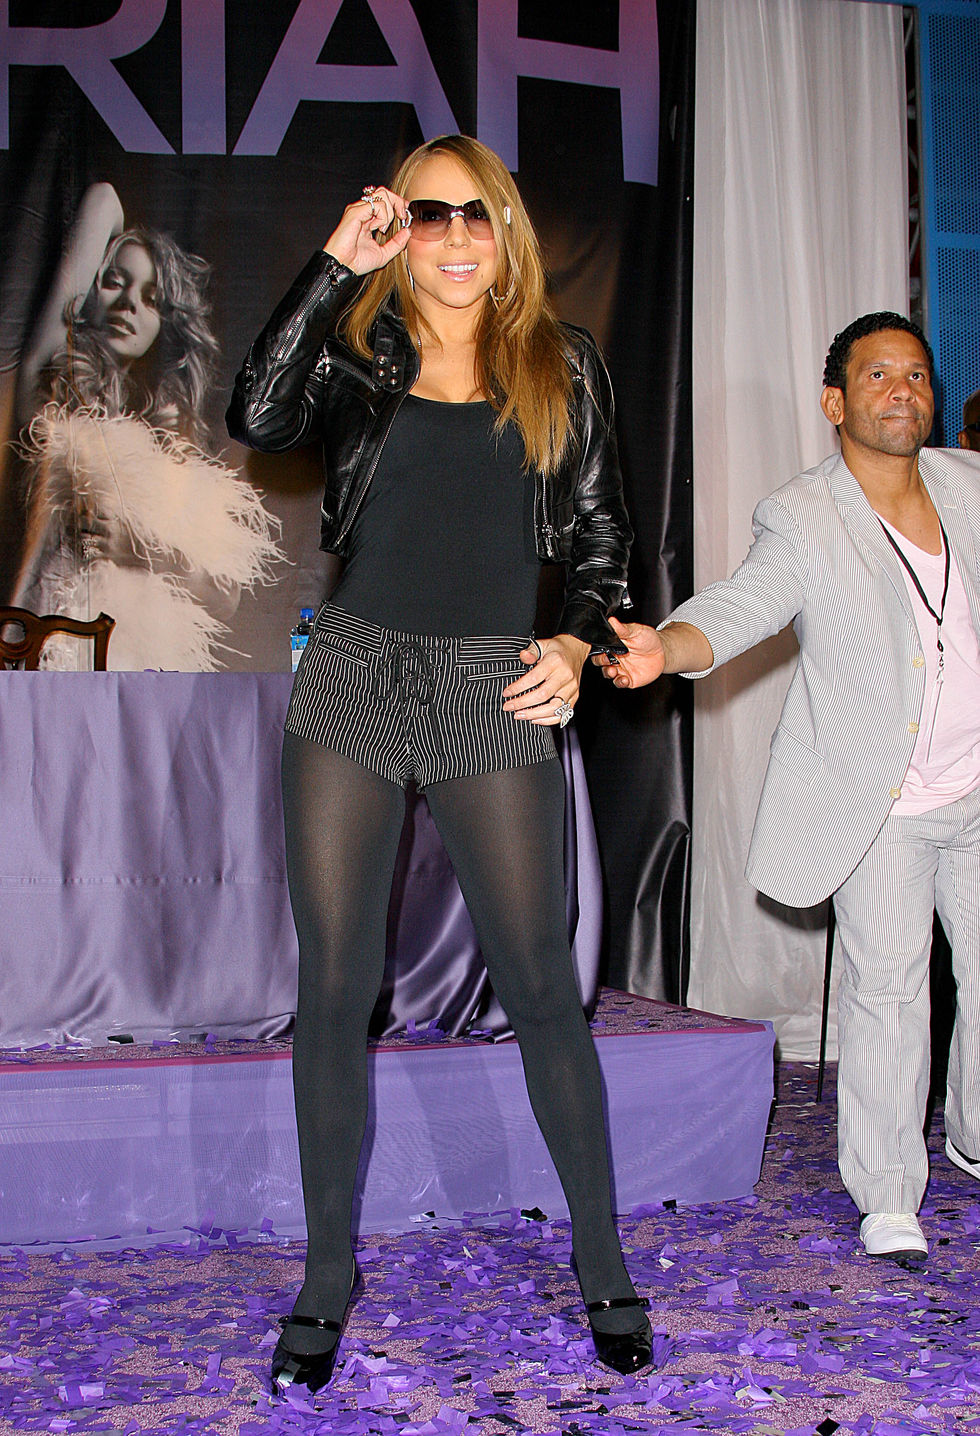 mariah-carey-emc2-promotion-at-the-hard-rock-cafe-in-universal-city-01